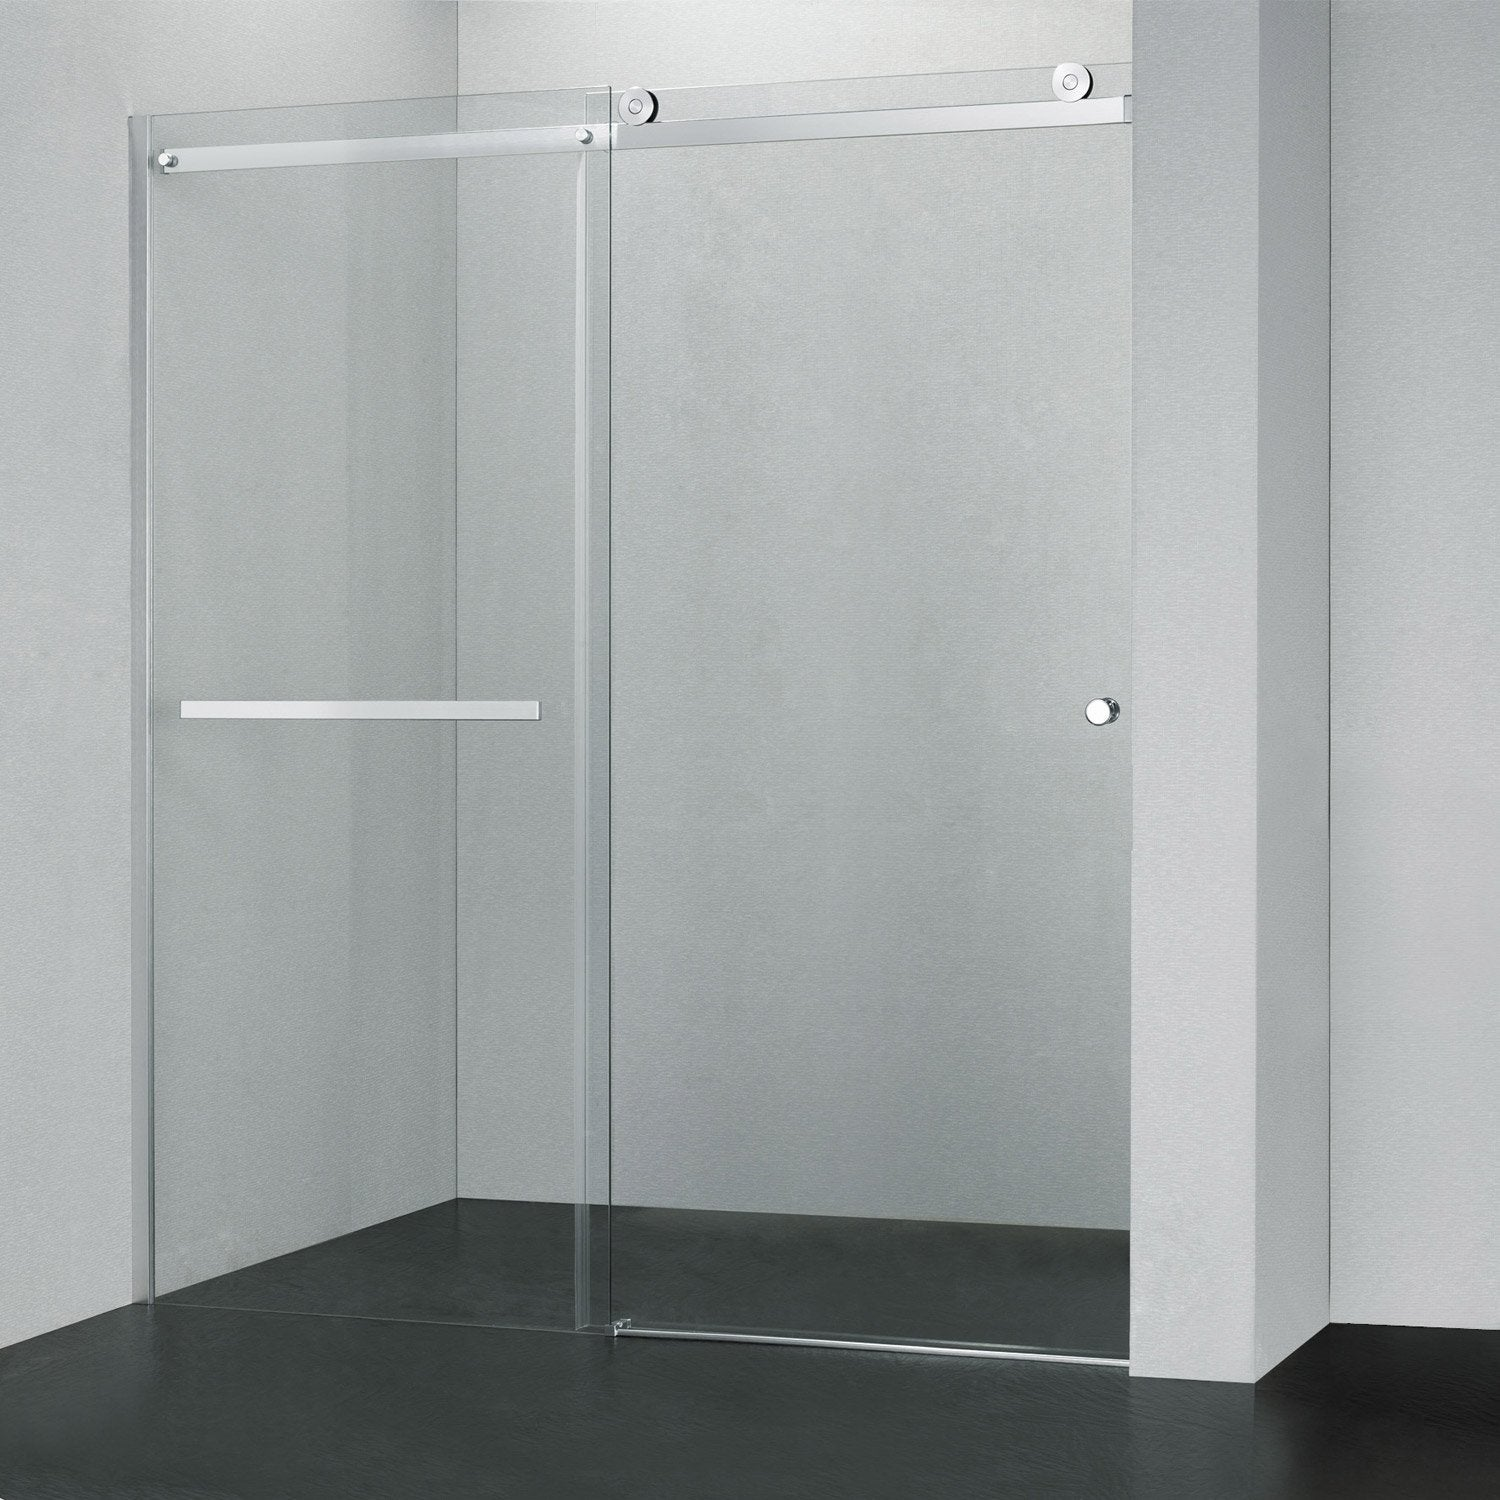 Porte de douche coulissante fabrik verre transparent for Porte coulissante 120 cm